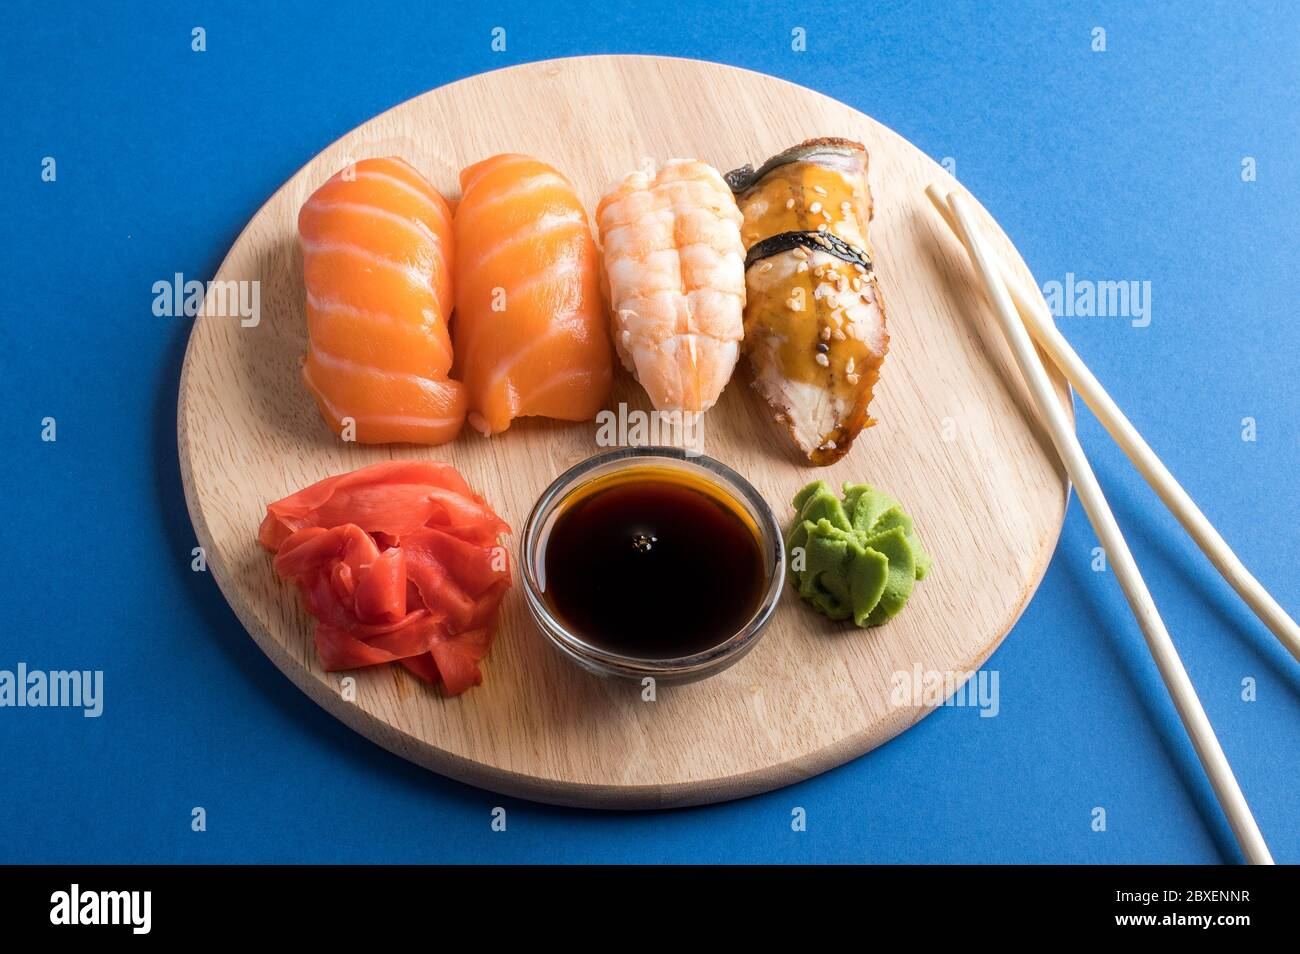 Close Up Of Sashimi Sushi Set Served On Wooden Plate Tasty Japanese Seafood Restaurant Concept Stock Photo Alamy